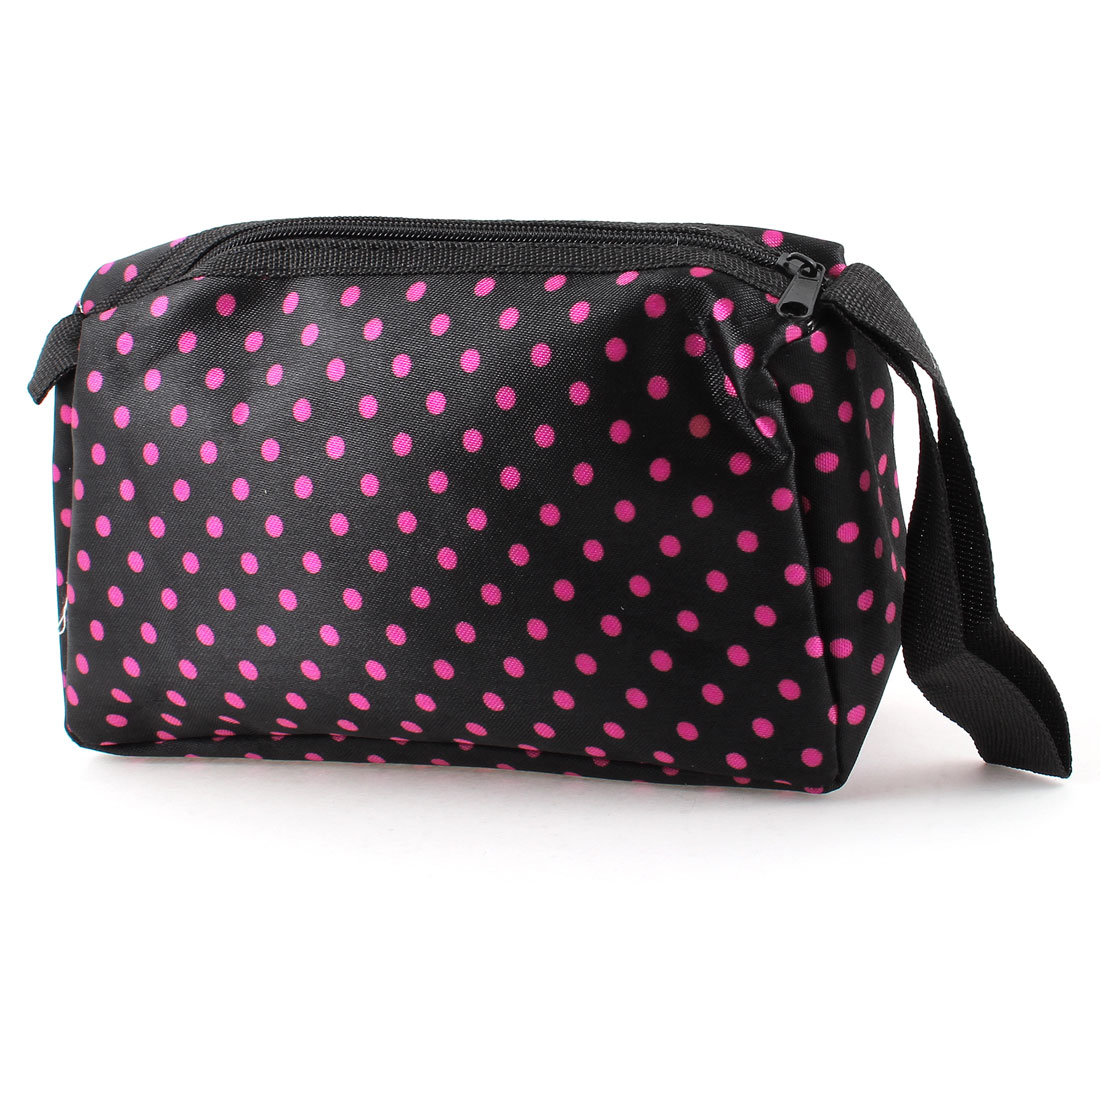 Zip Up Fuchsia Dots Pattern Black Cosmetic Pouch Bag w Hand Strap